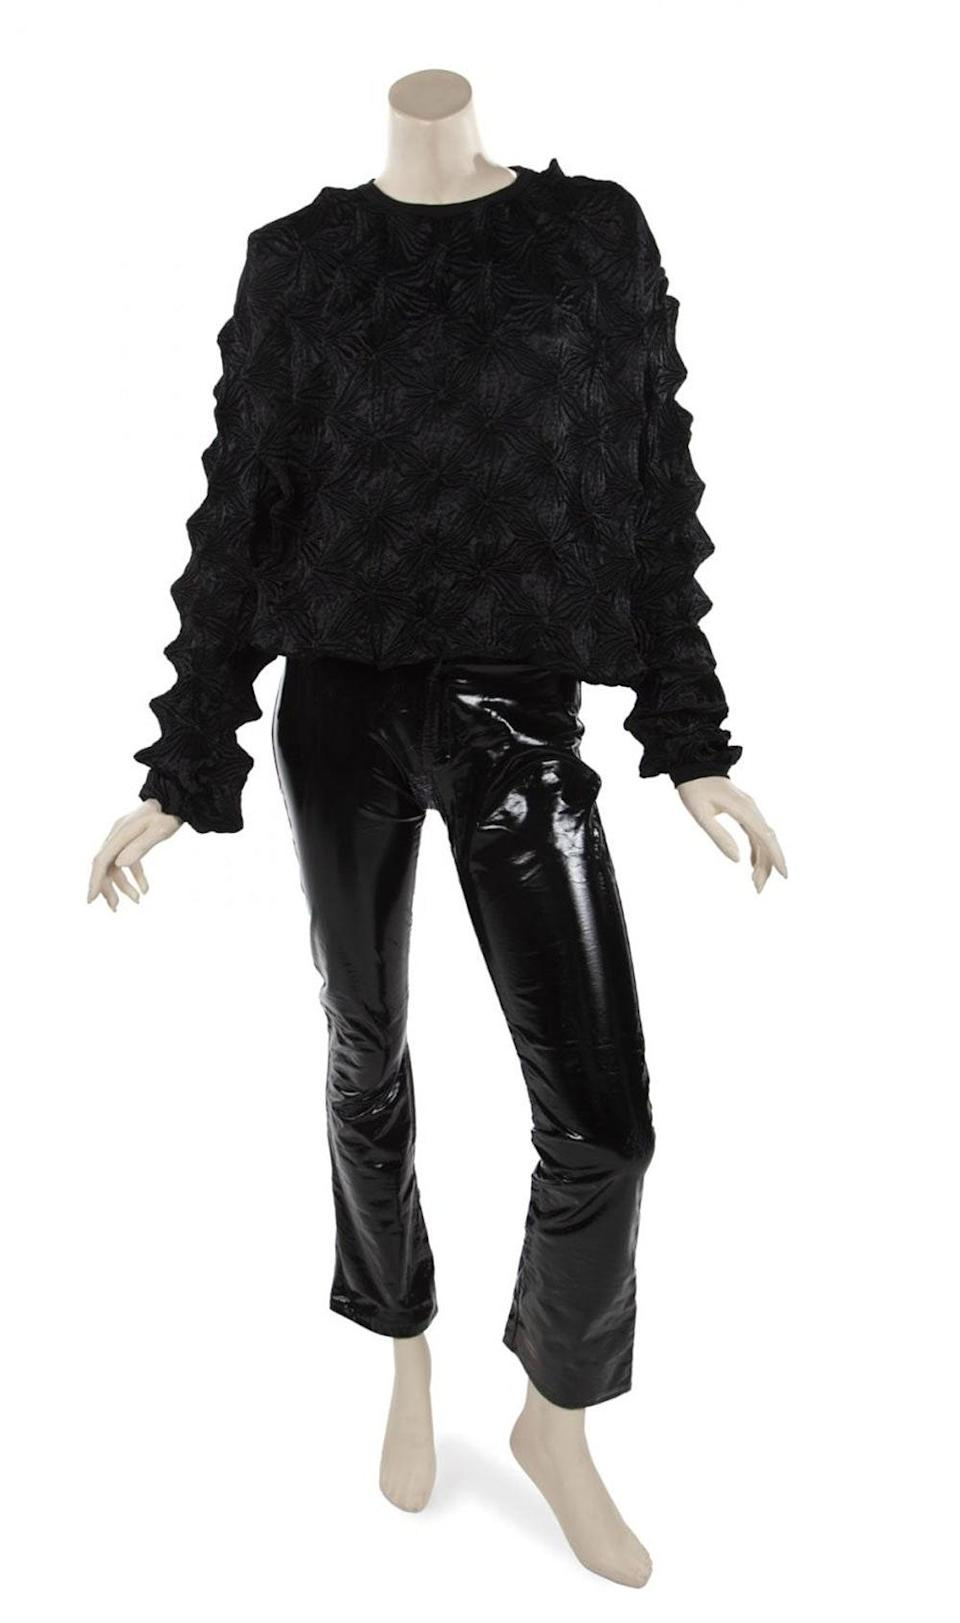 Dexter Wong shirt and patent leather pants.